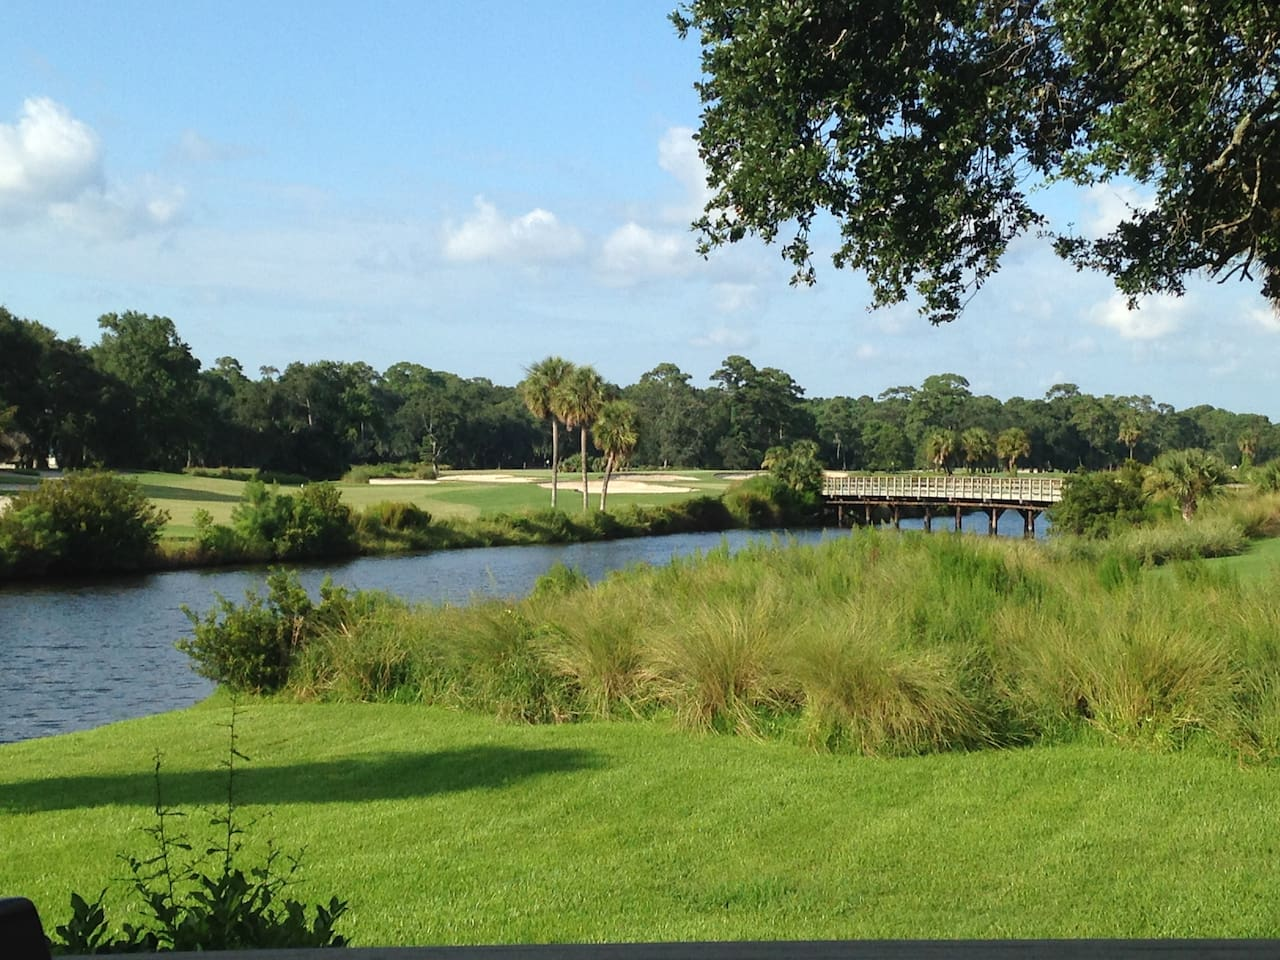 Stunning views of the lagoon and the signature 7th hole of the Fazio golf course from the back deck.